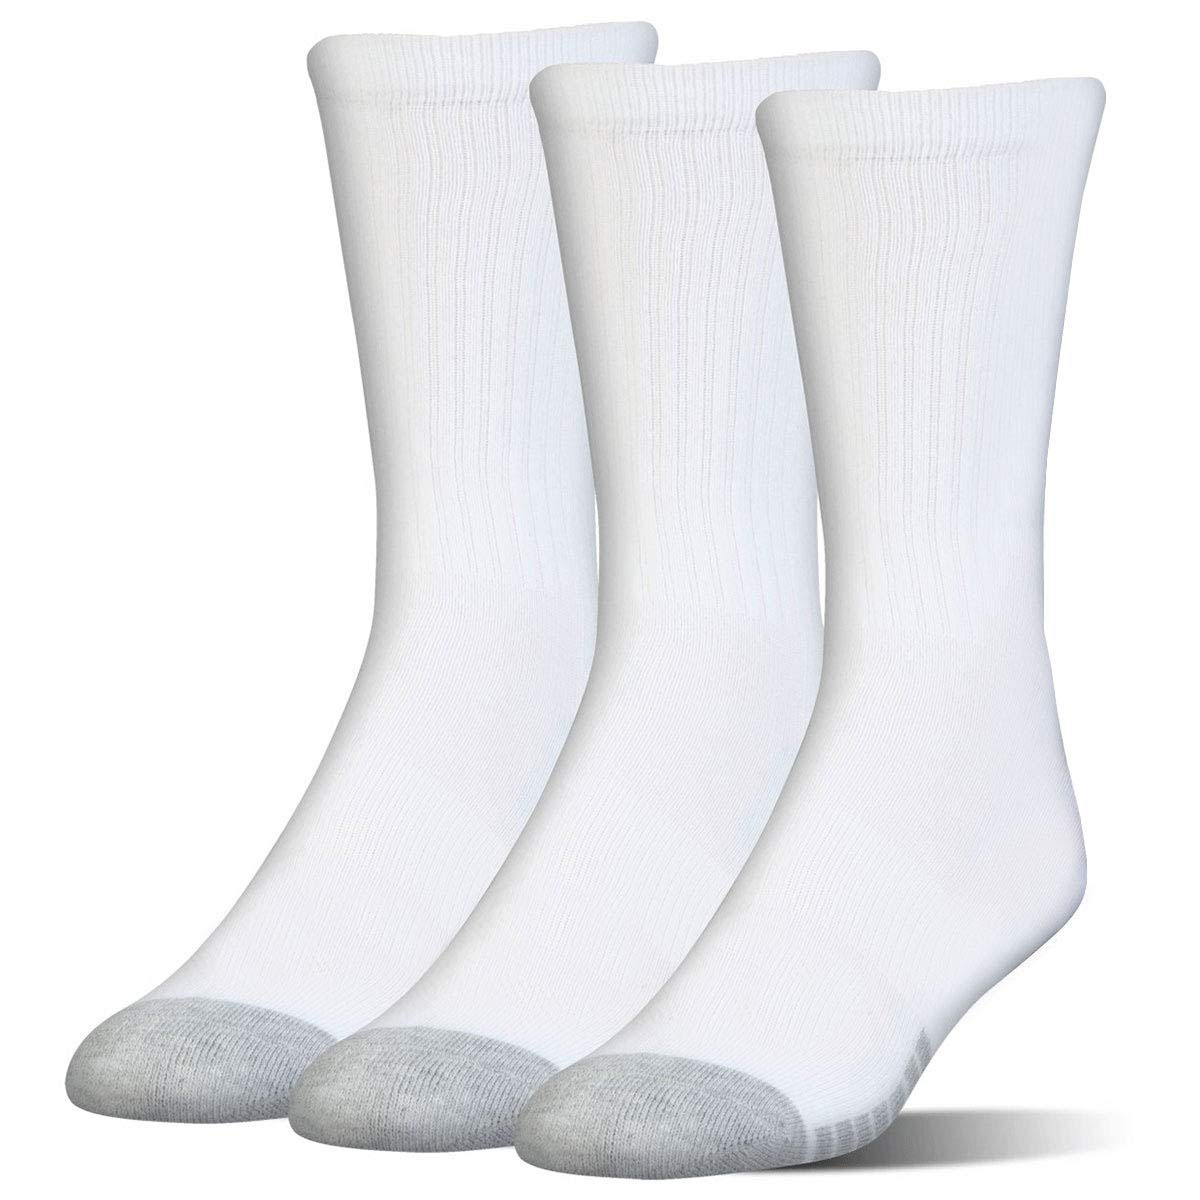 White New Under Armour 3-Pack Elevated Performance Crew Socks Size M UK 3-7.5